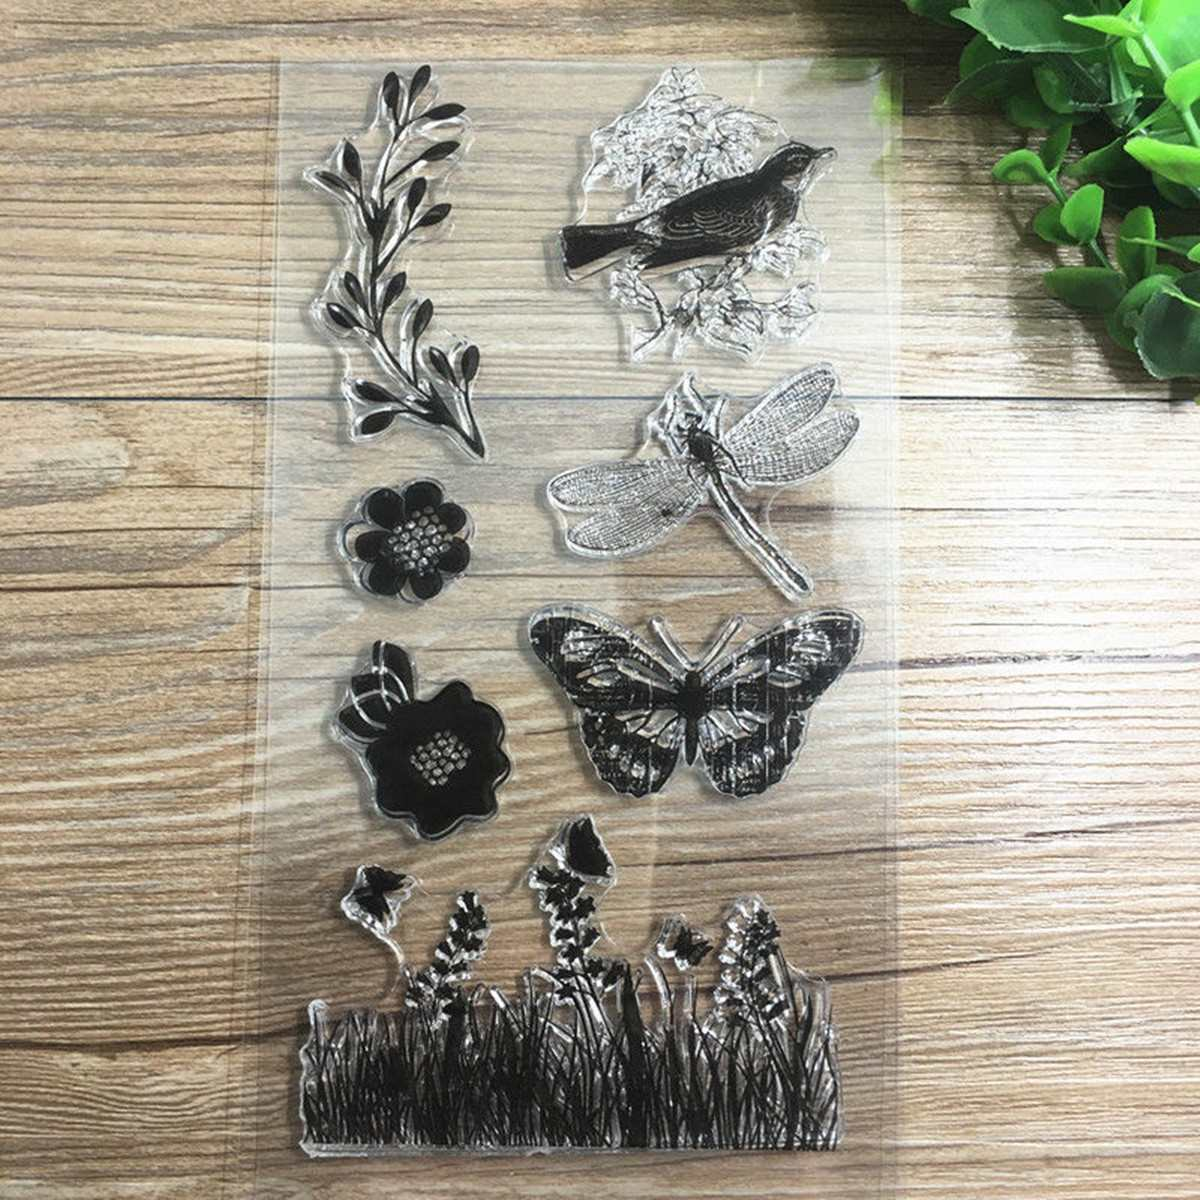 Rubber stamps for crafting - Kiwarm Grass Butterfly Dragonfly Birds Transparent Rubber Stamp For Scrapbooking Silicone Sheet Diy Home Craft Decoration